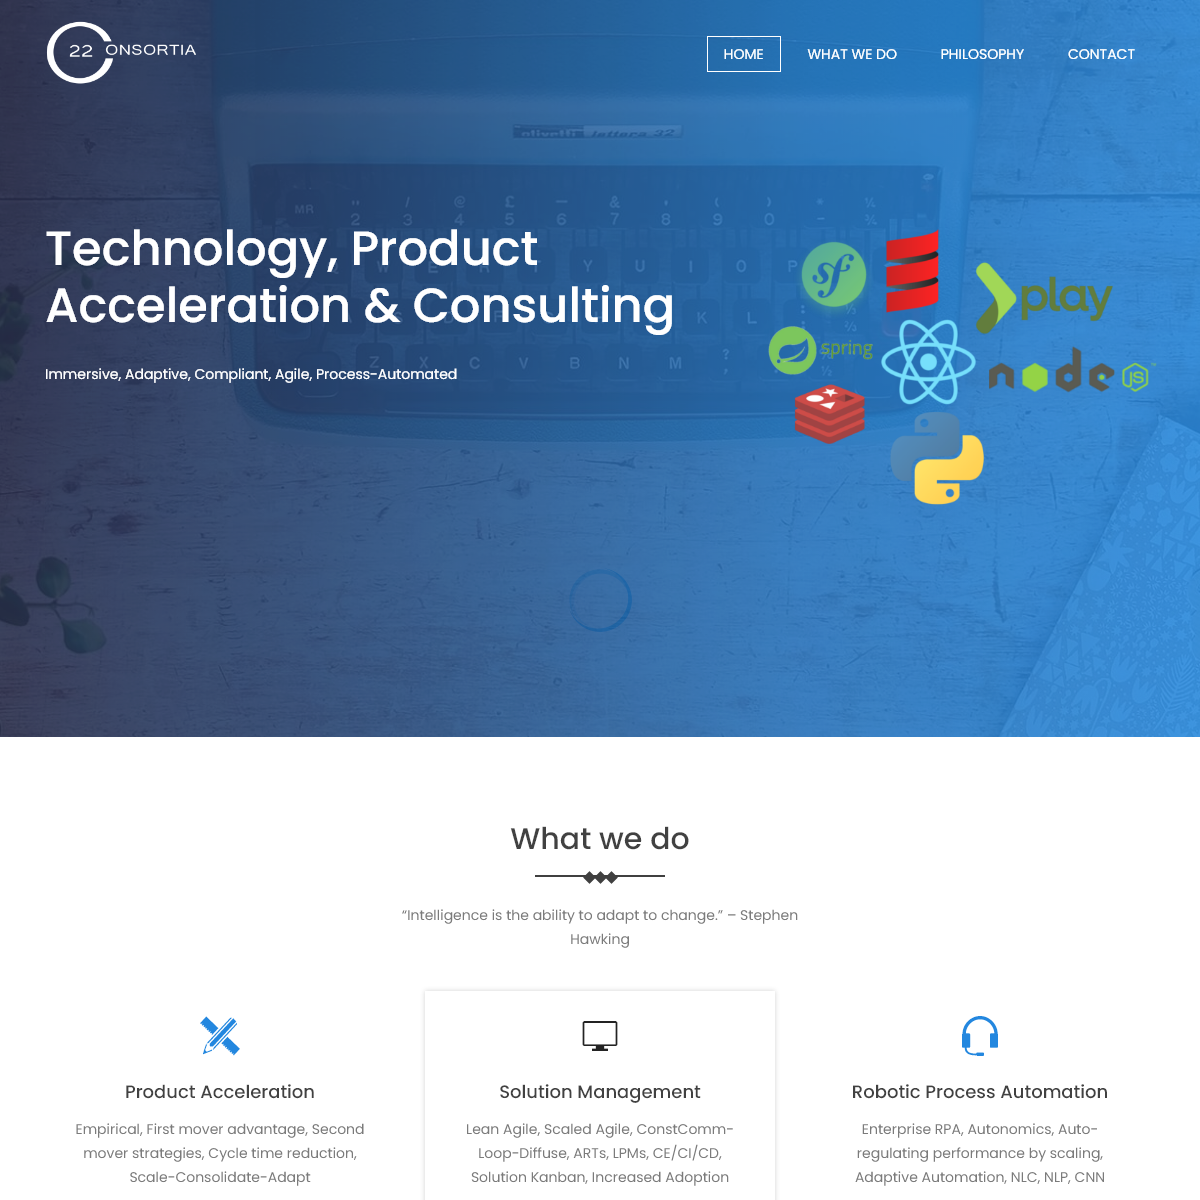 Consortia22 - Technology, Consulting, Product Acceleration